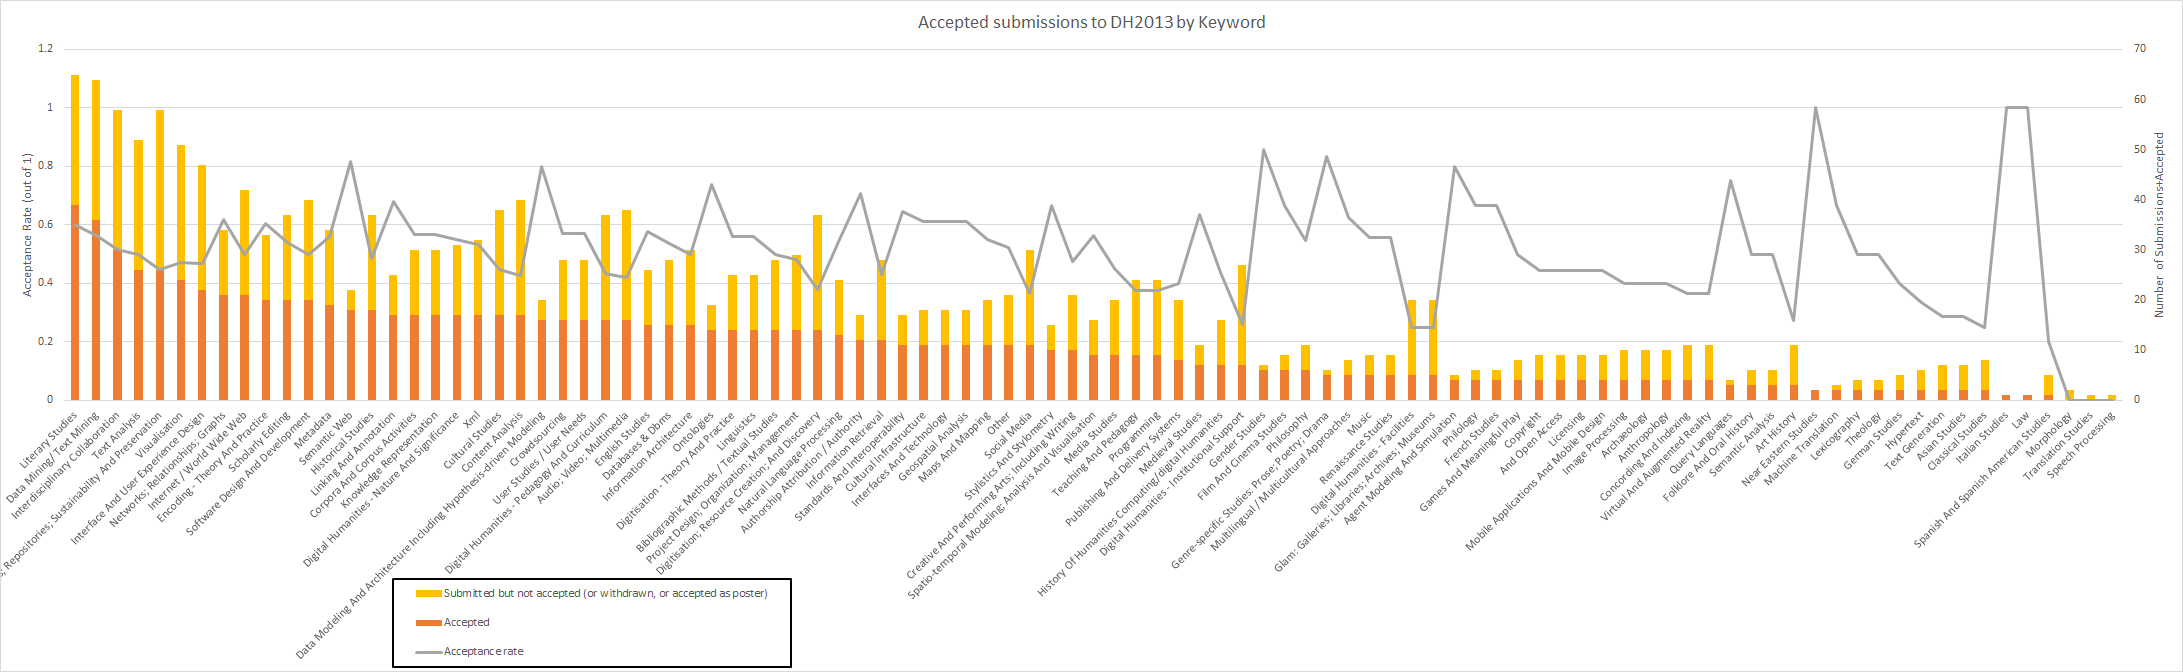 Figure 3. Acceptance rates of DH2013 by Keywords attached to submissions, sorted by acceptance rate. (click to enlarge)